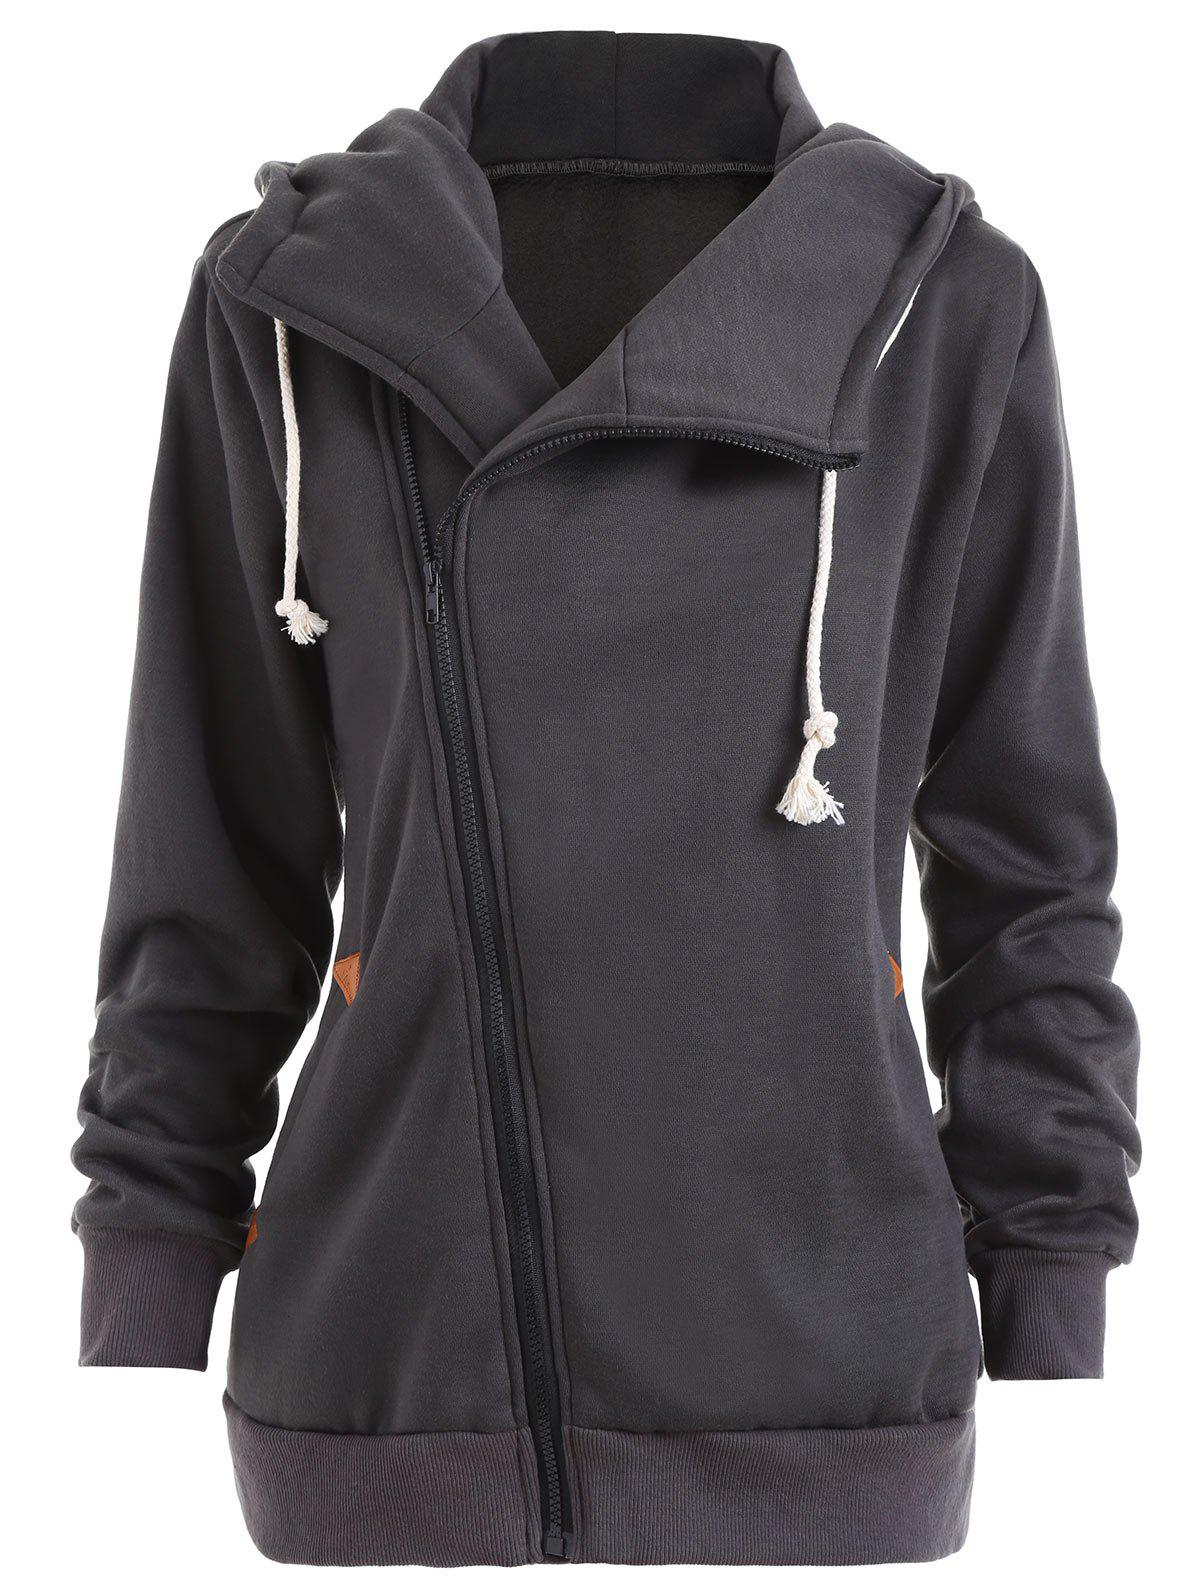 Plus Size Flocking Inclined Zipper Hooded CoatWOMEN<br><br>Size: 4XL; Color: DEEP GRAY; Clothes Type: Others; Material: Polyester; Type: Slim; Shirt Length: Long; Sleeve Length: Full; Collar: Hooded; Closure Type: Zipper; Pattern Type: Solid; Style: Casual; Season: Fall,Winter; With Belt: No; Weight: 0.7350kg; Package Contents: 1 x Coat;